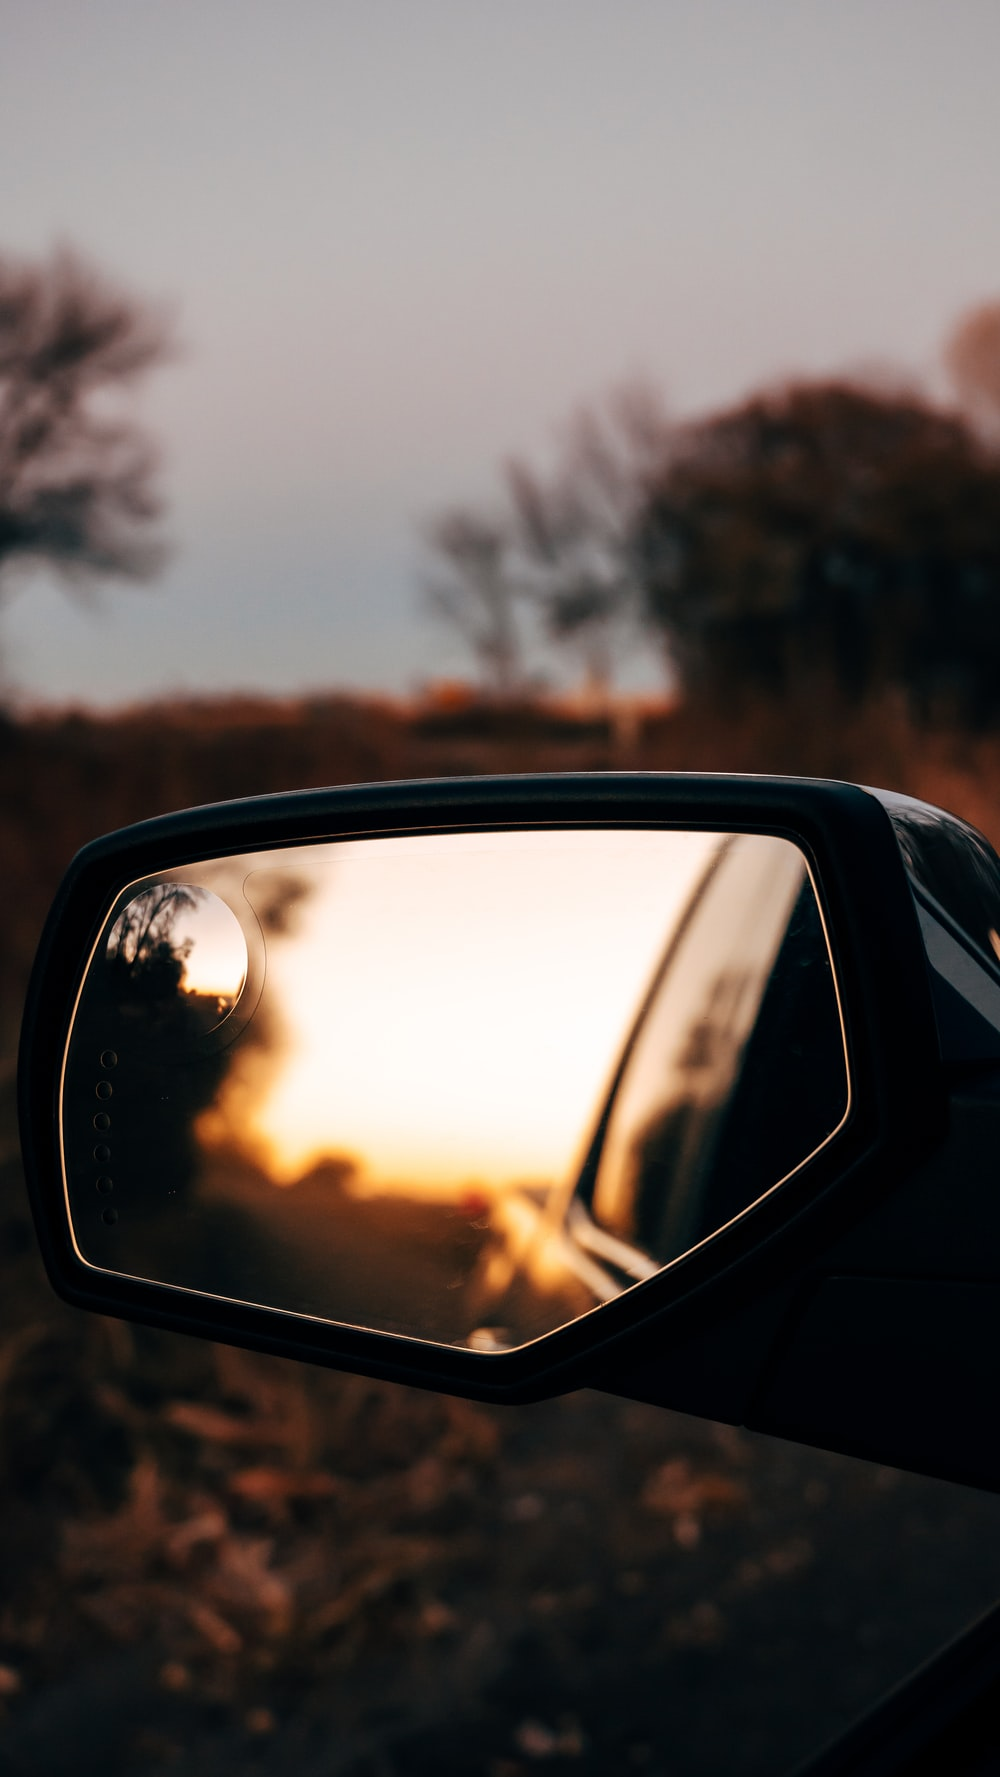 car side mirror with reflection of trees on road during daytime